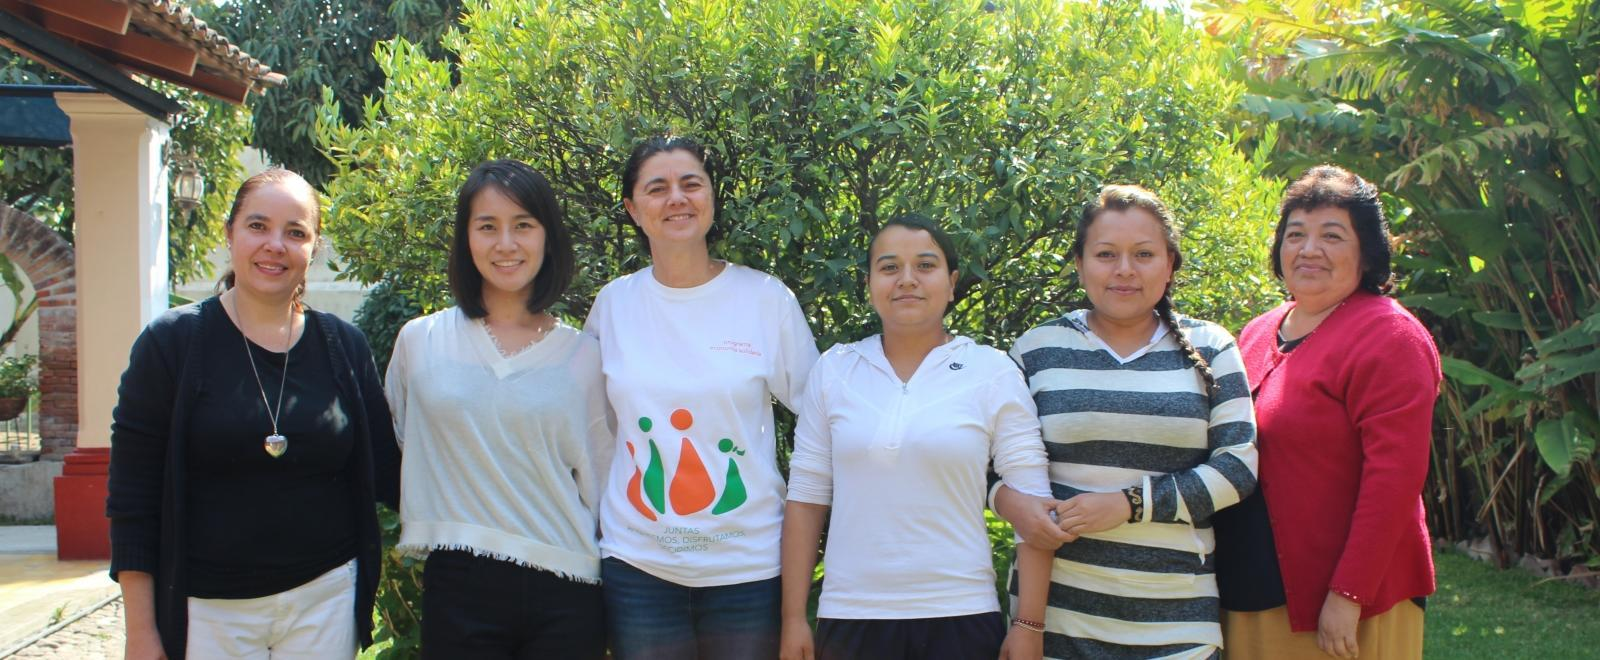 International Development interns pose outside with staff from a women's empowerment organisation in Mexico.